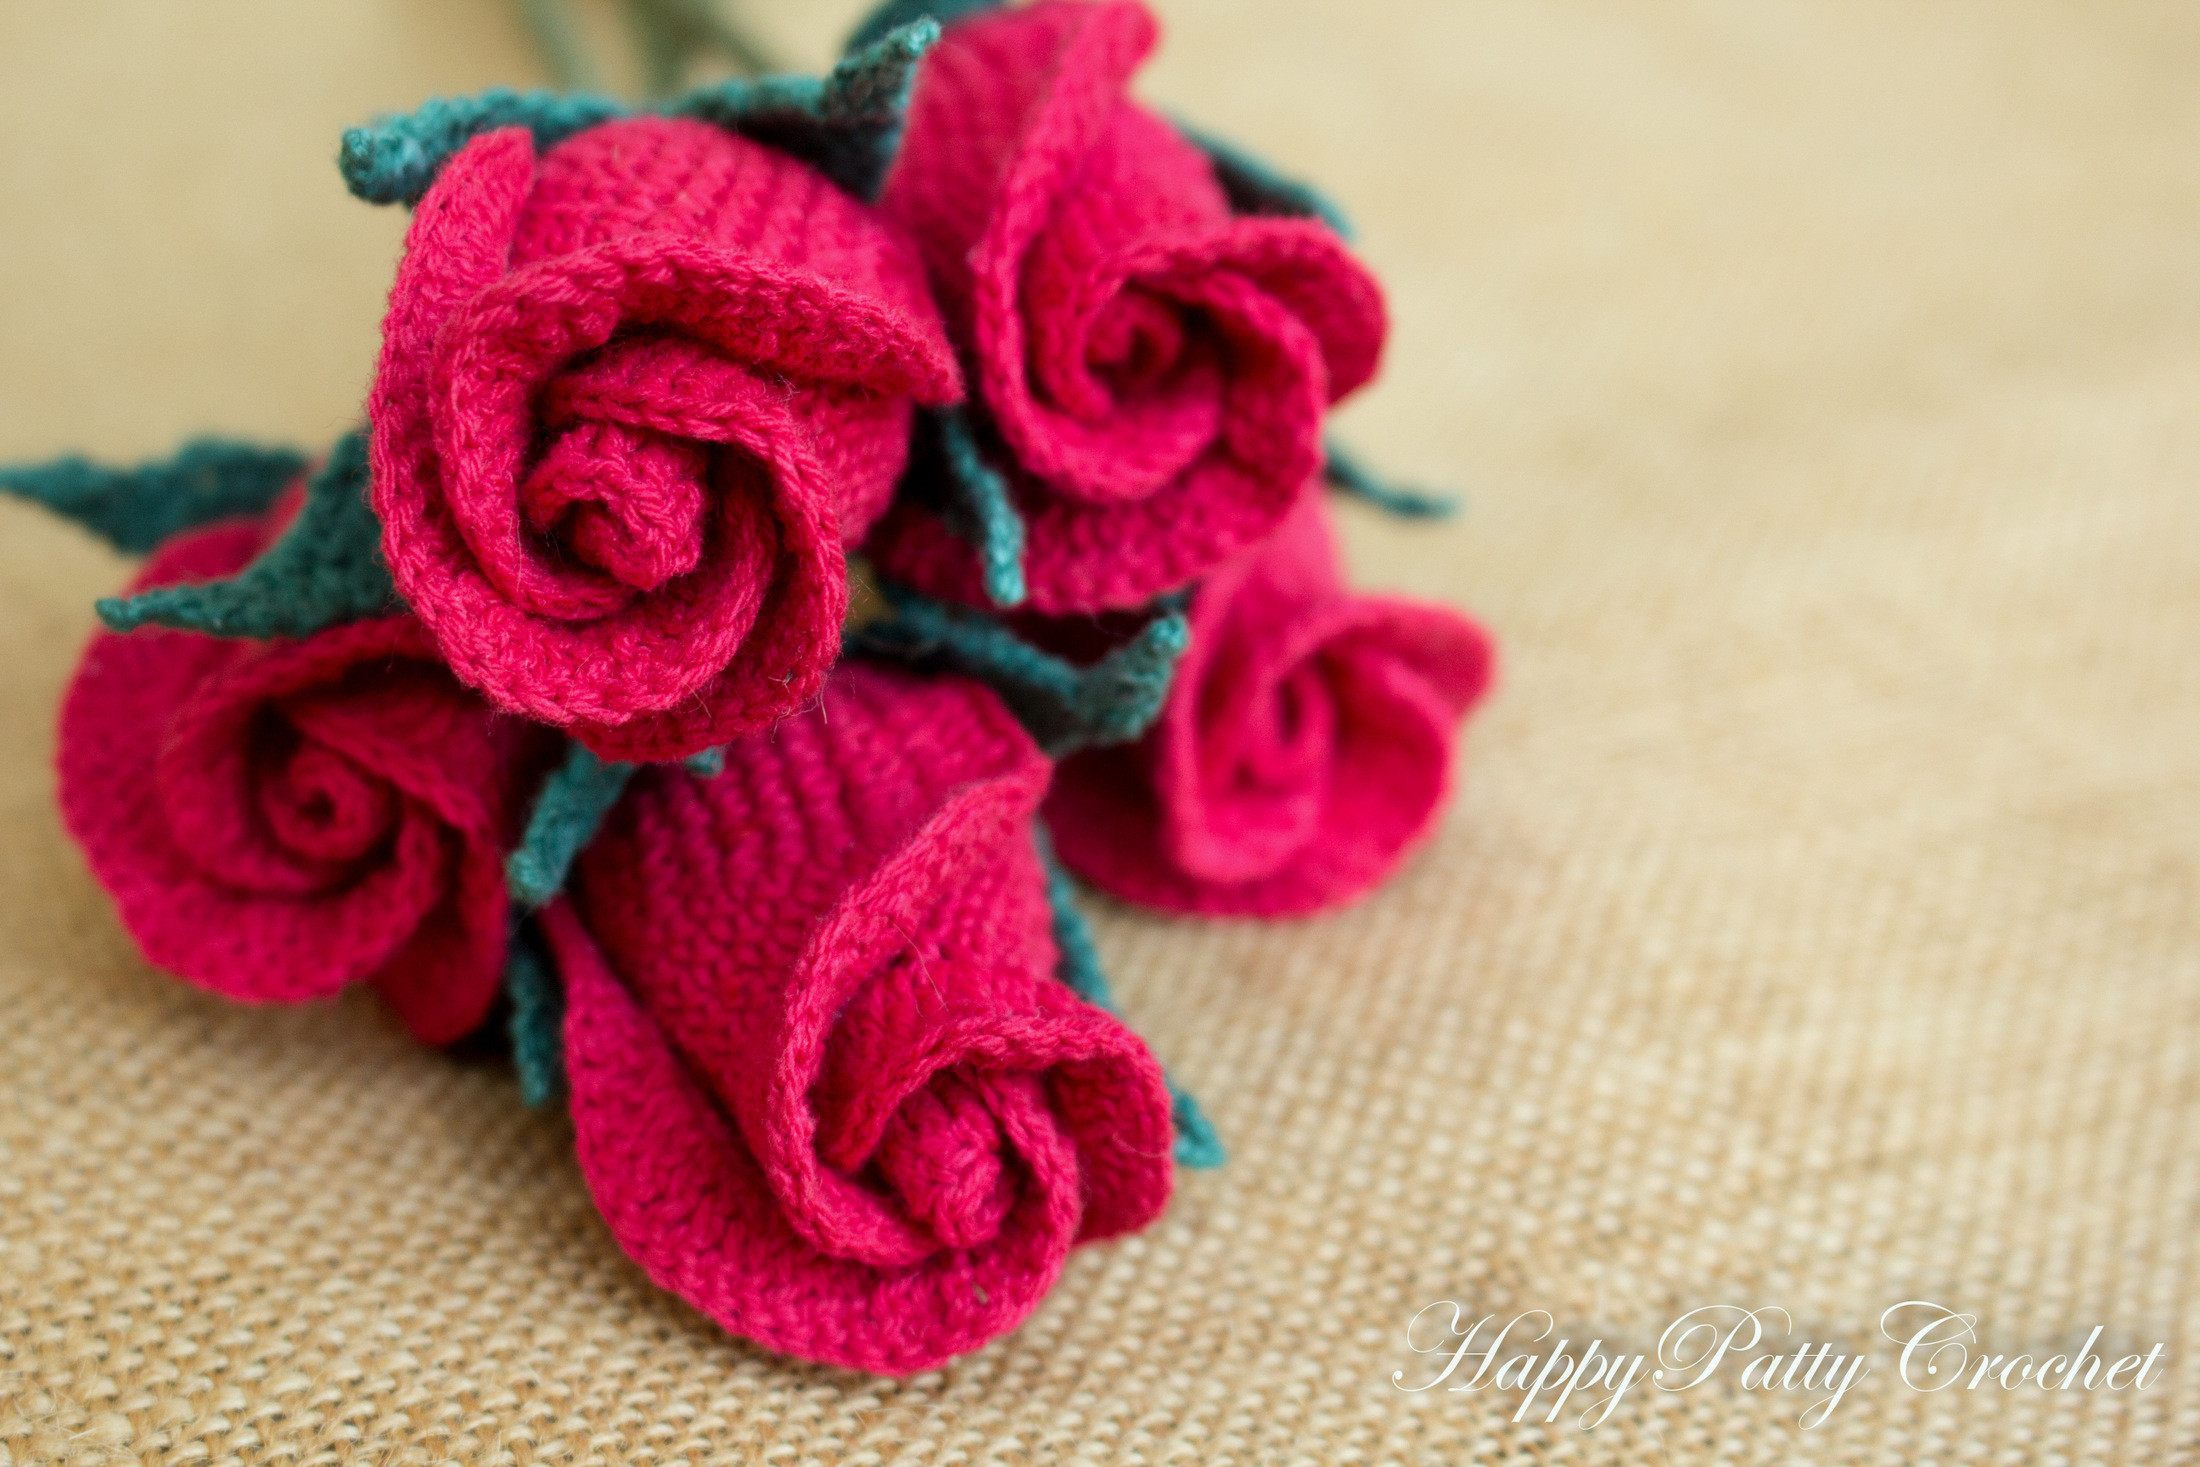 Crochet Closed Rose Pattern by Happy Patty Crochet